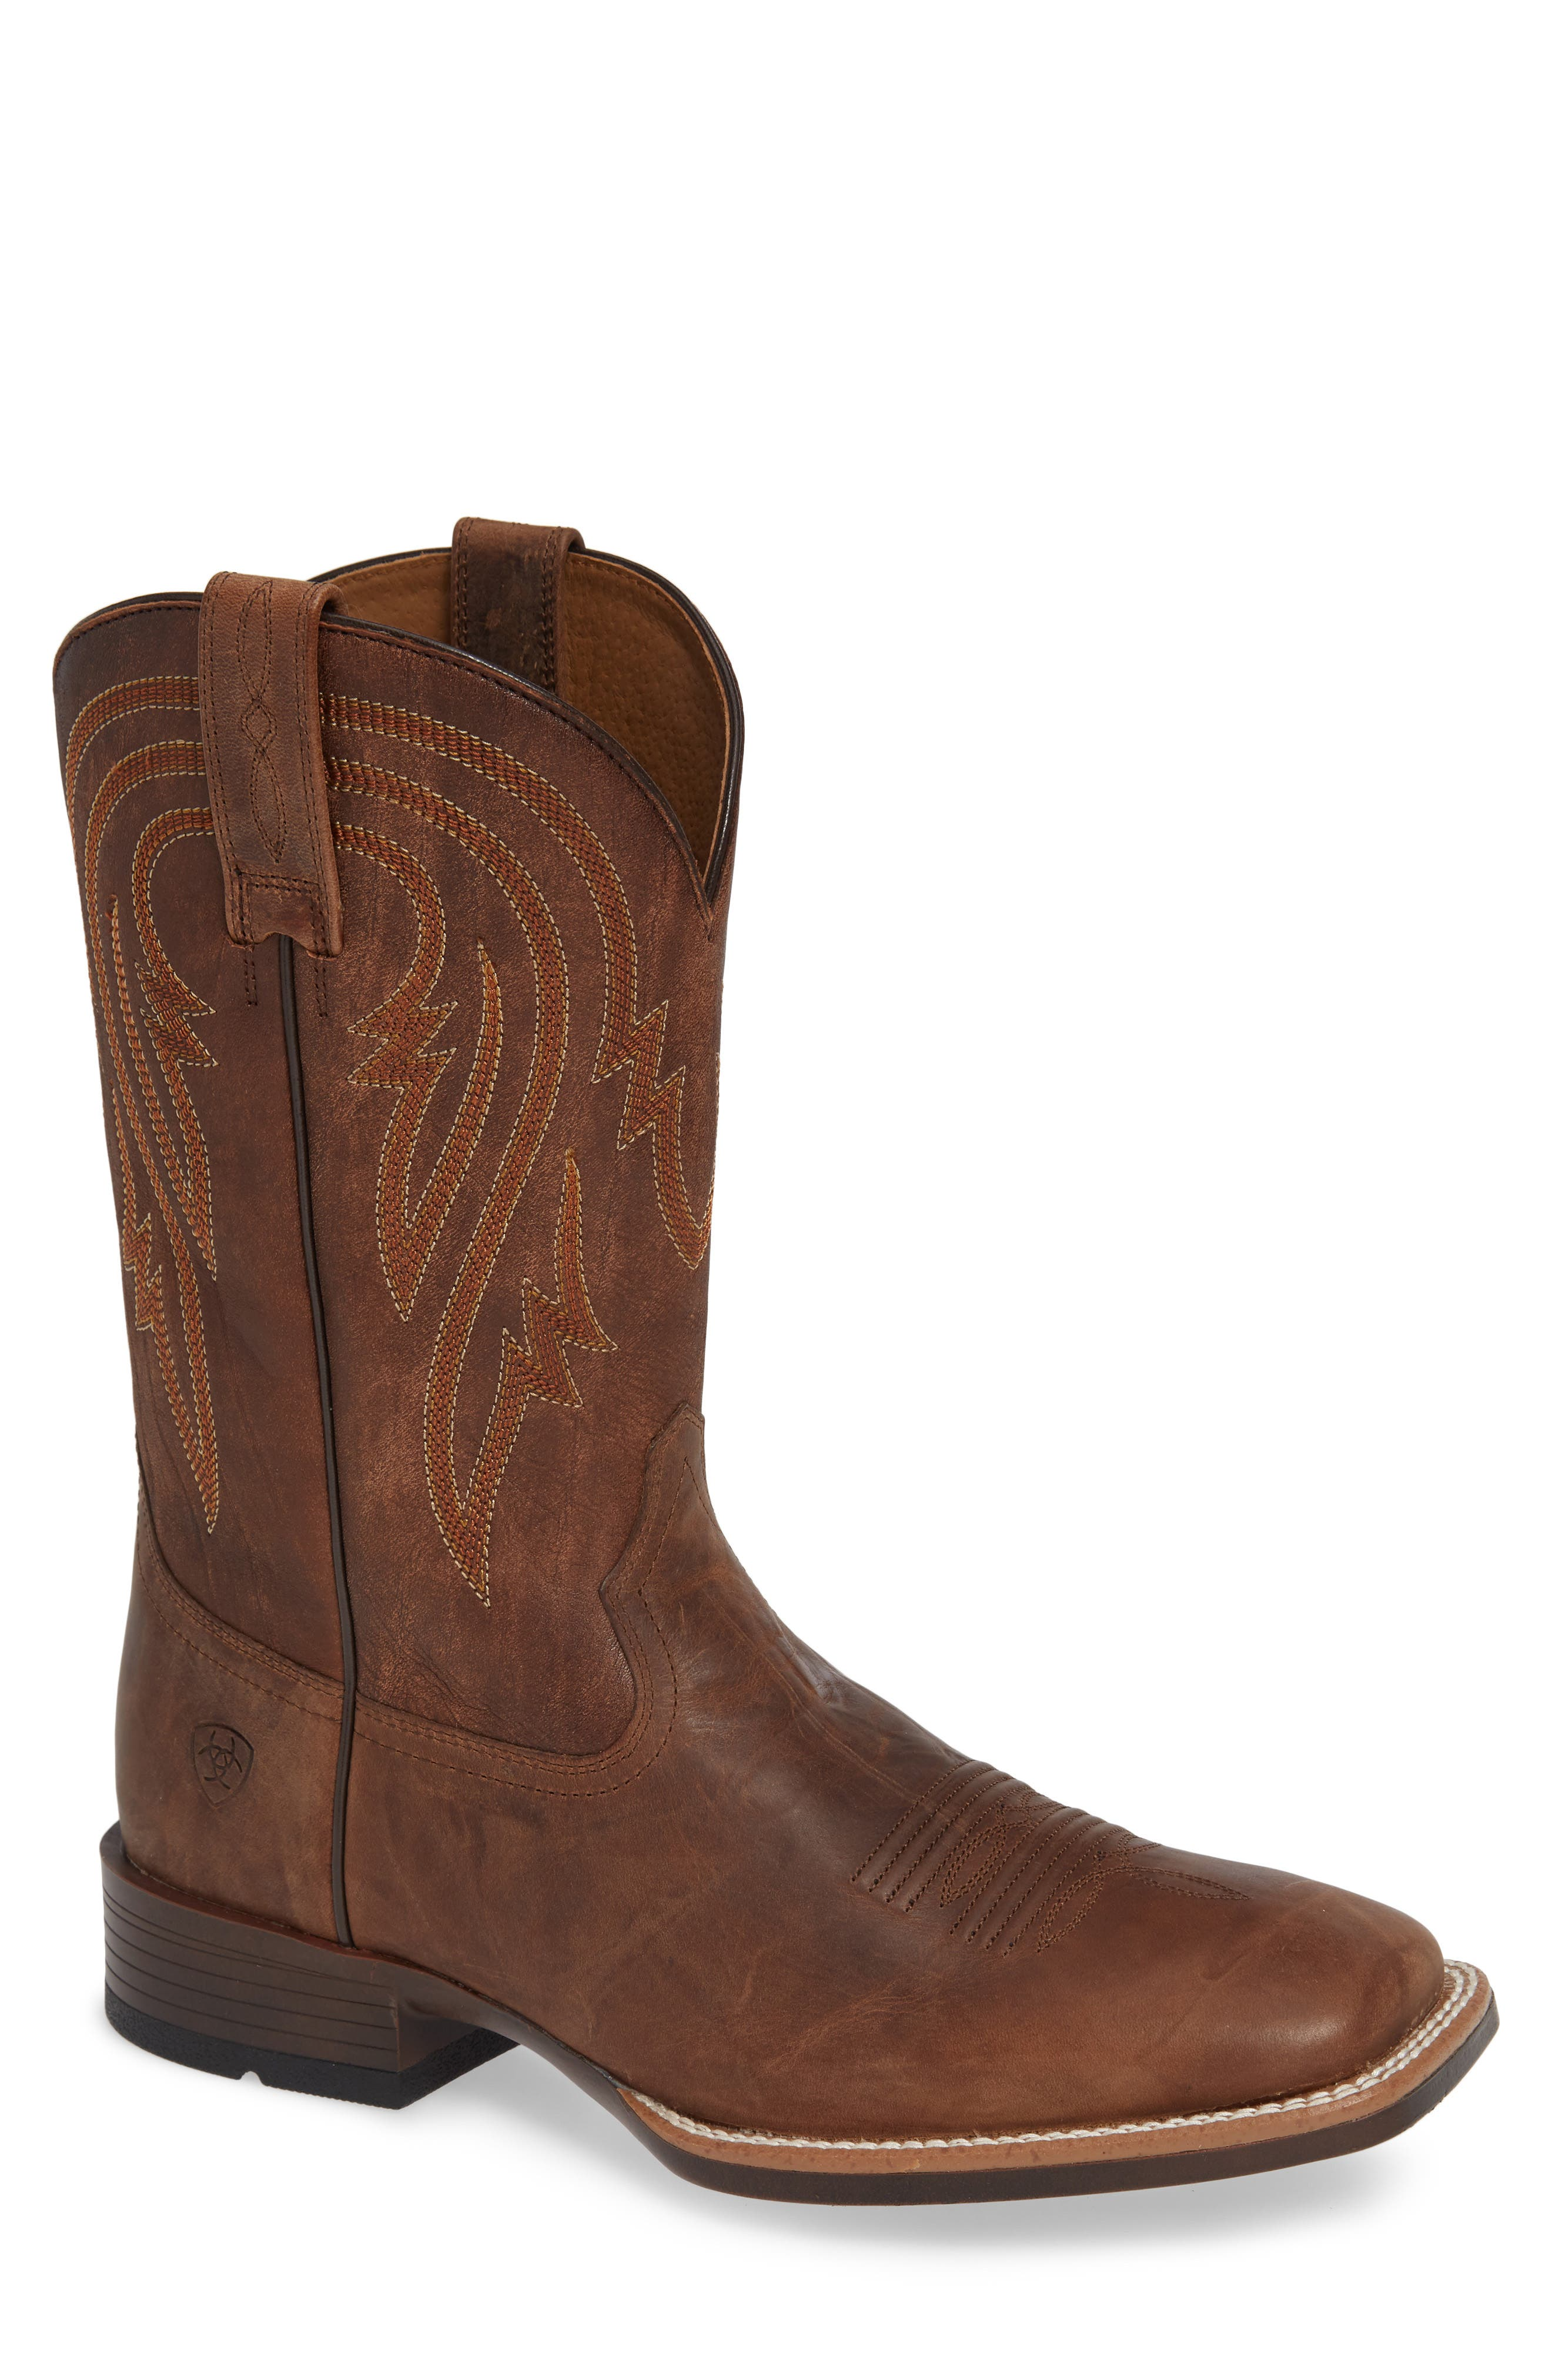 Ariat Plano Cowboy Boot, Brown